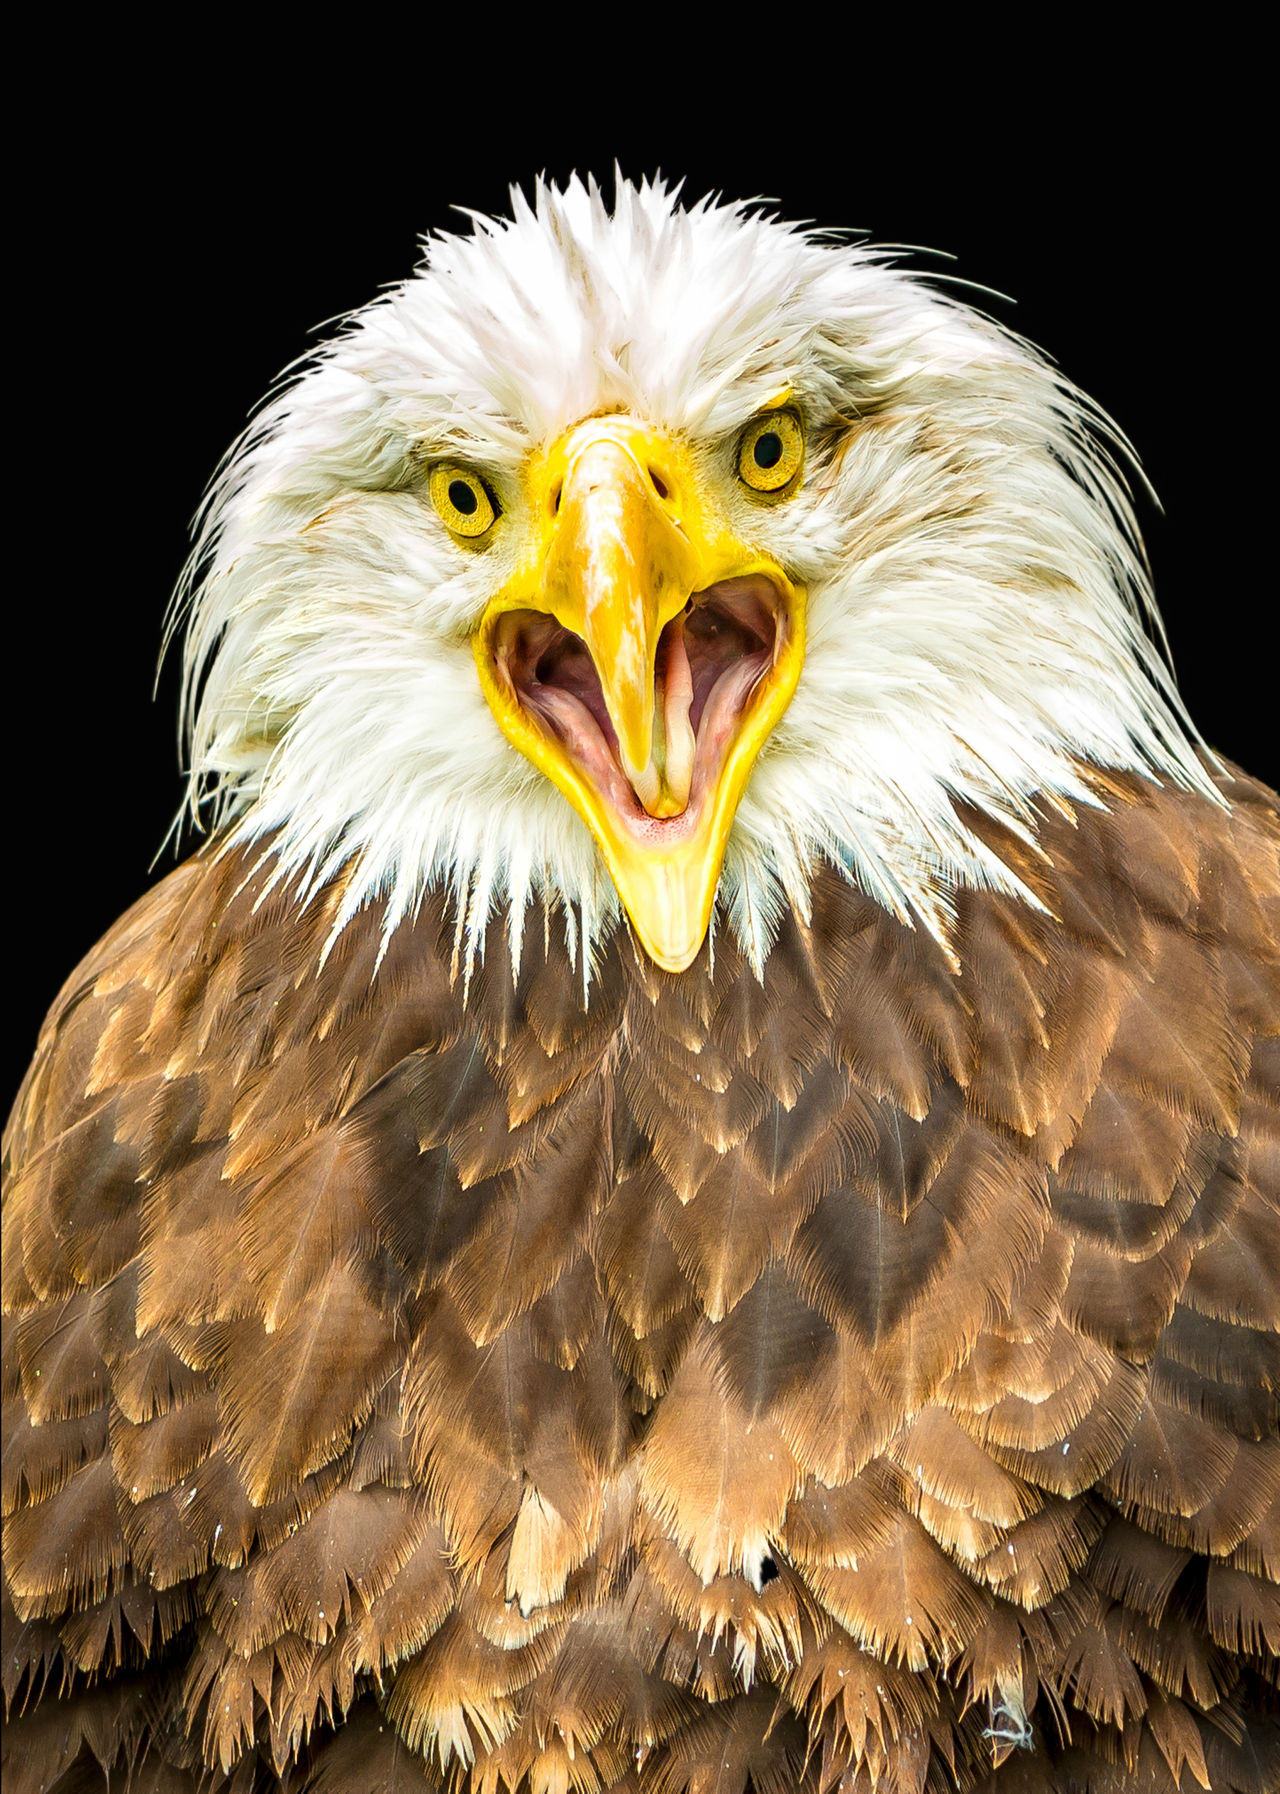 Eagle - Bird Bird Of Prey Close-up Portrait Bird No People Vogel Nature Animal Themes Portraits Animal Skin Adler Eagle Portrait Eagle Wild Animals In The Wild One Animal Animal Wildlife EyeEm Nature Lover Animal Animal Head  EyeEm Best Shots EyeEmBestPics Tierfotografie Birds Of EyeEm